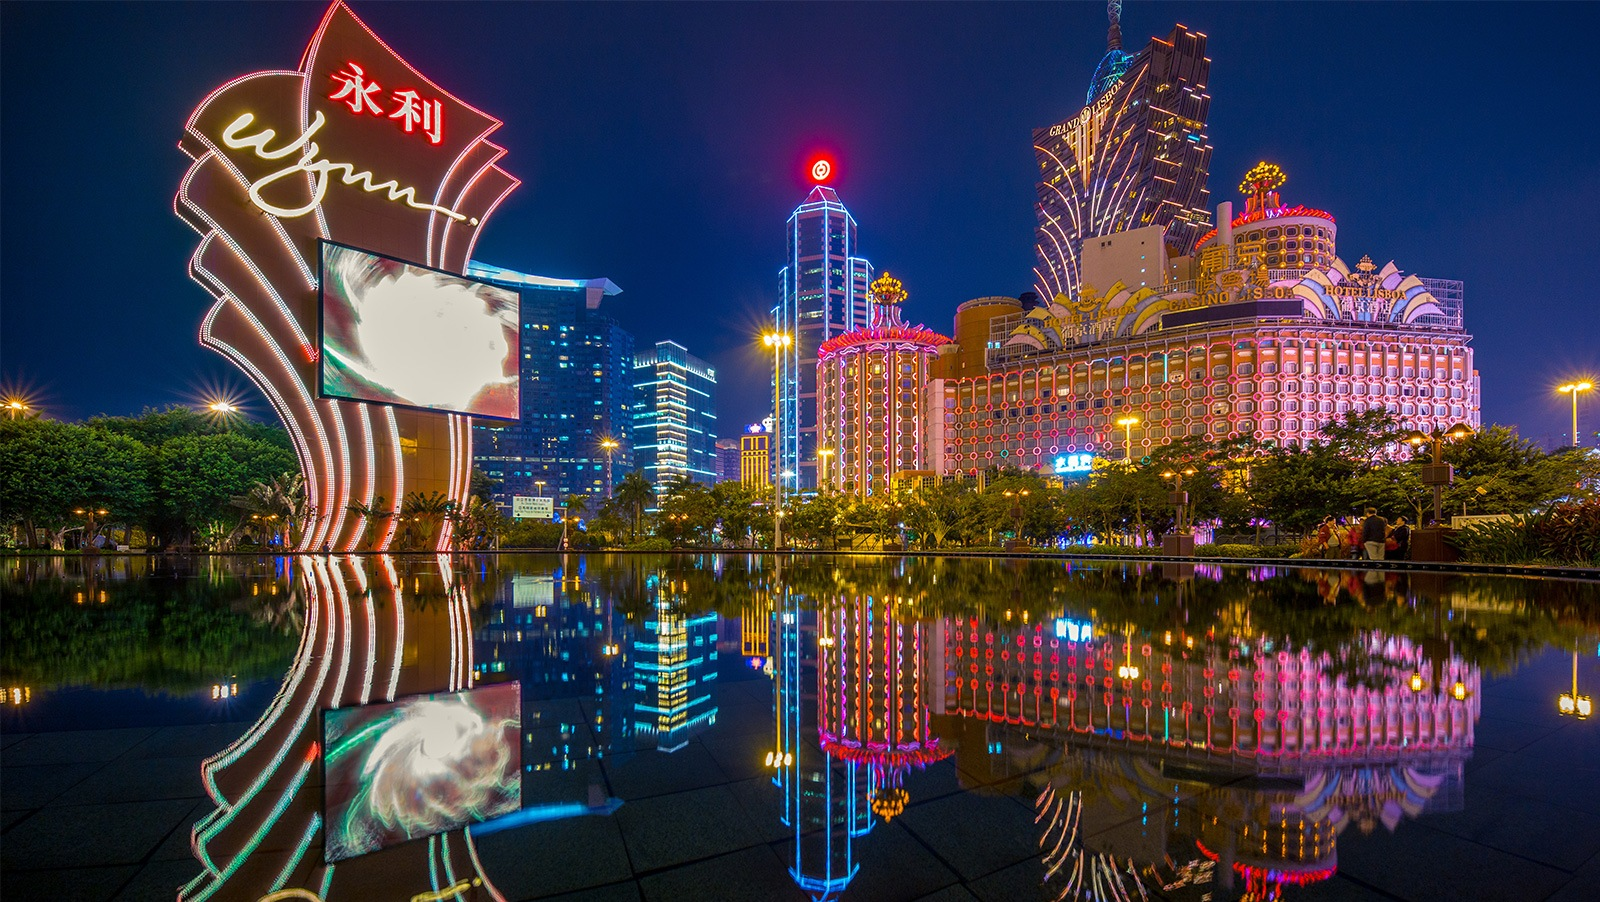 Macau mass market gaming growth still in the shadow of a trade war